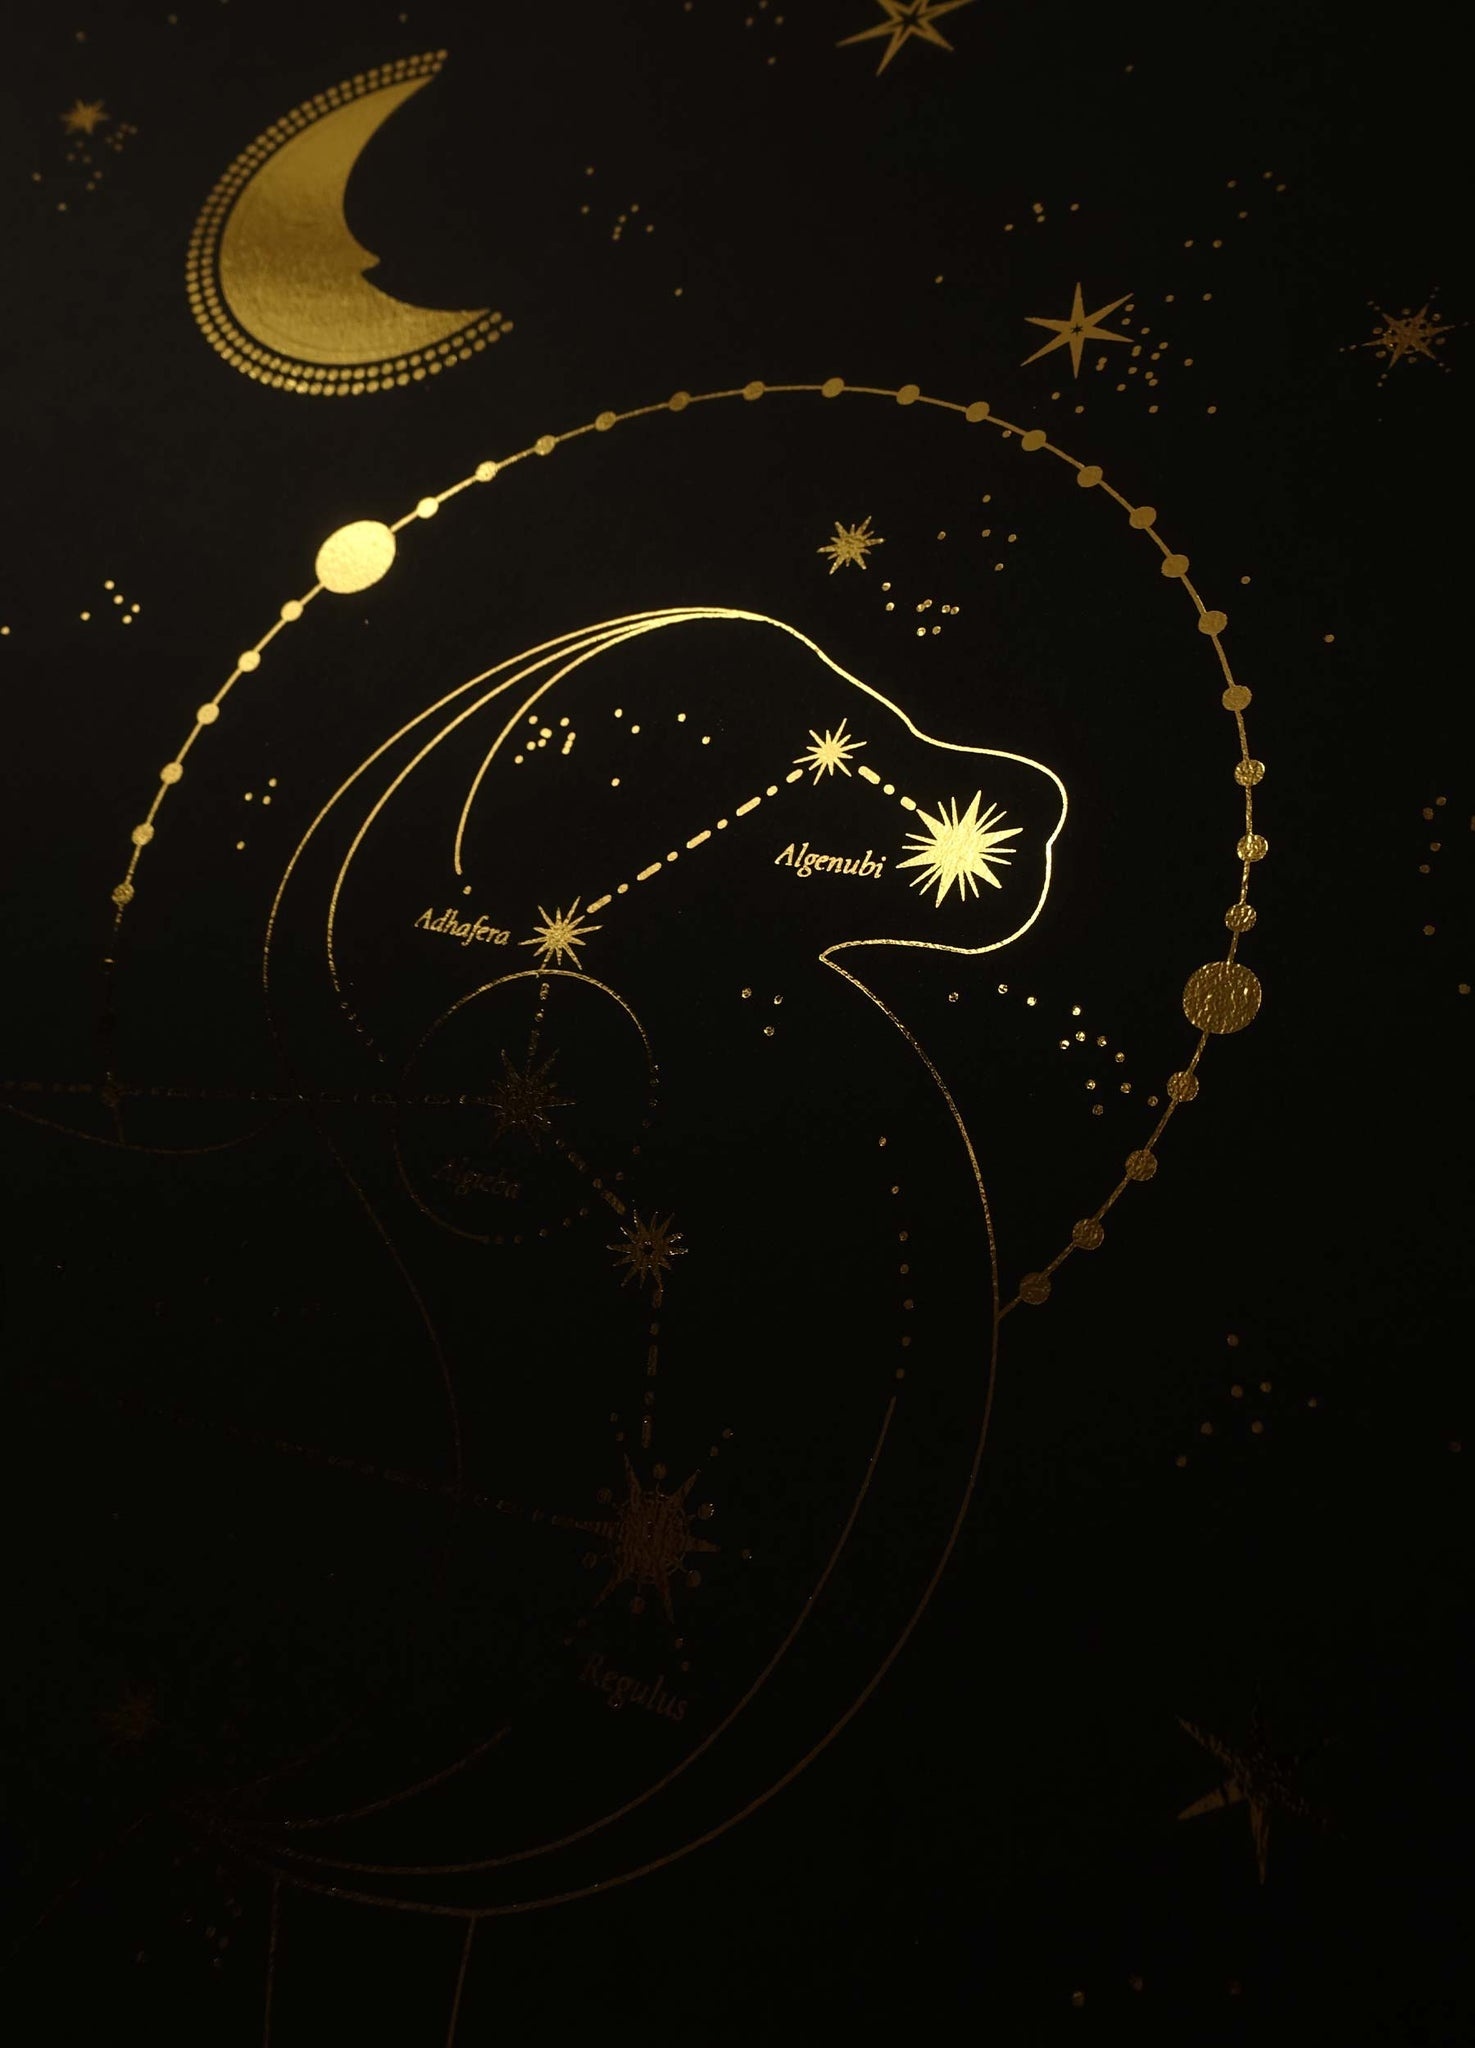 Leo Constellation gold foil art print on black paper by Cocorrina & Co Studio and Shop